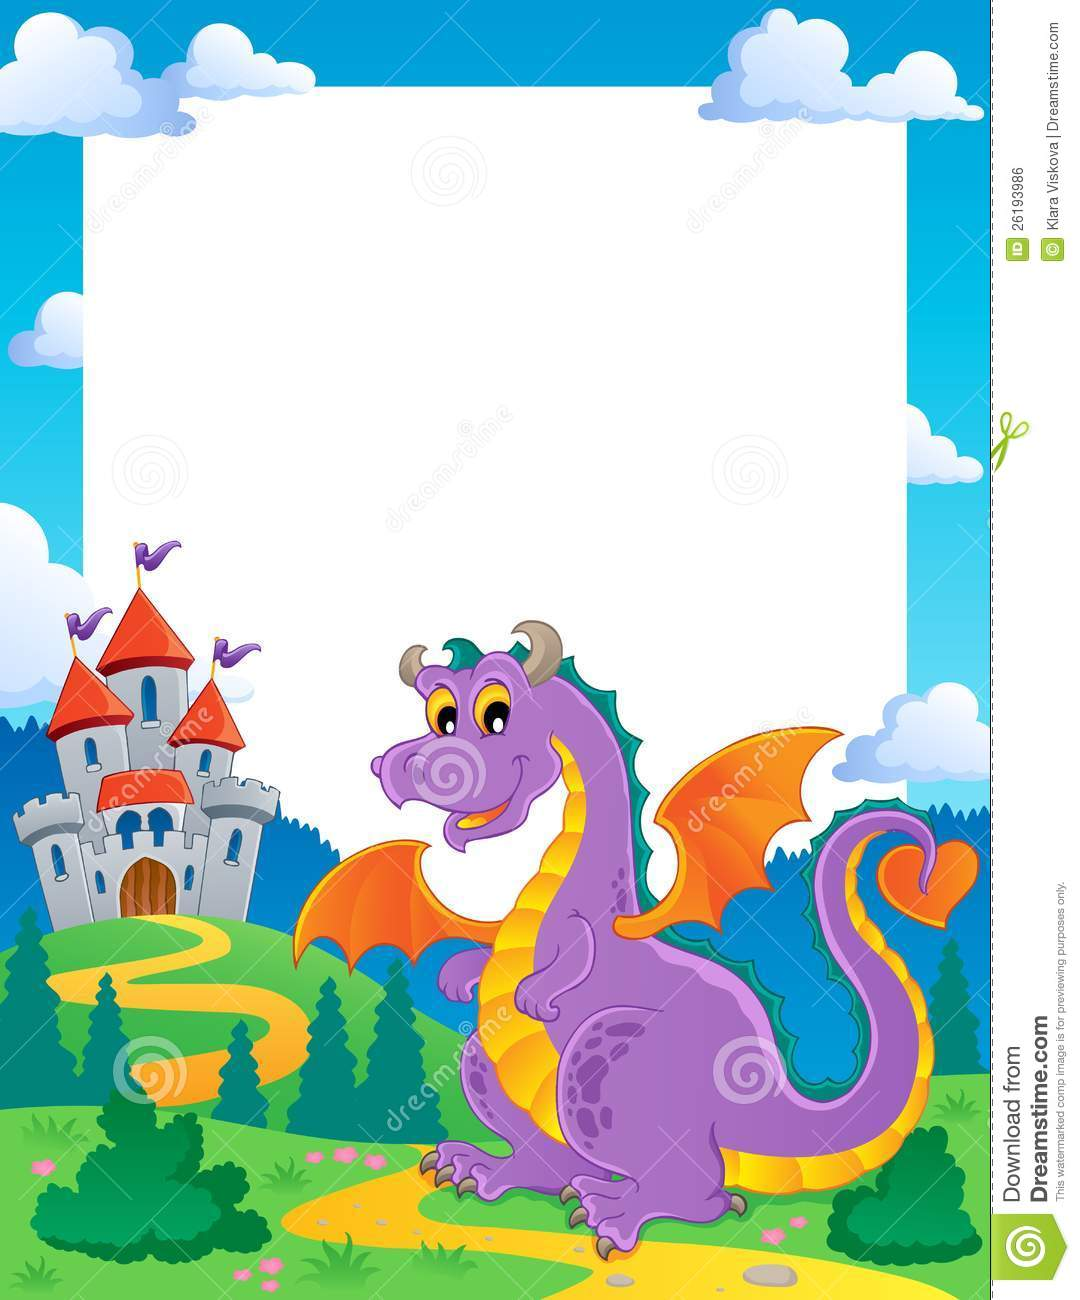 fairy tale theme frame 1 royalty free stock image image